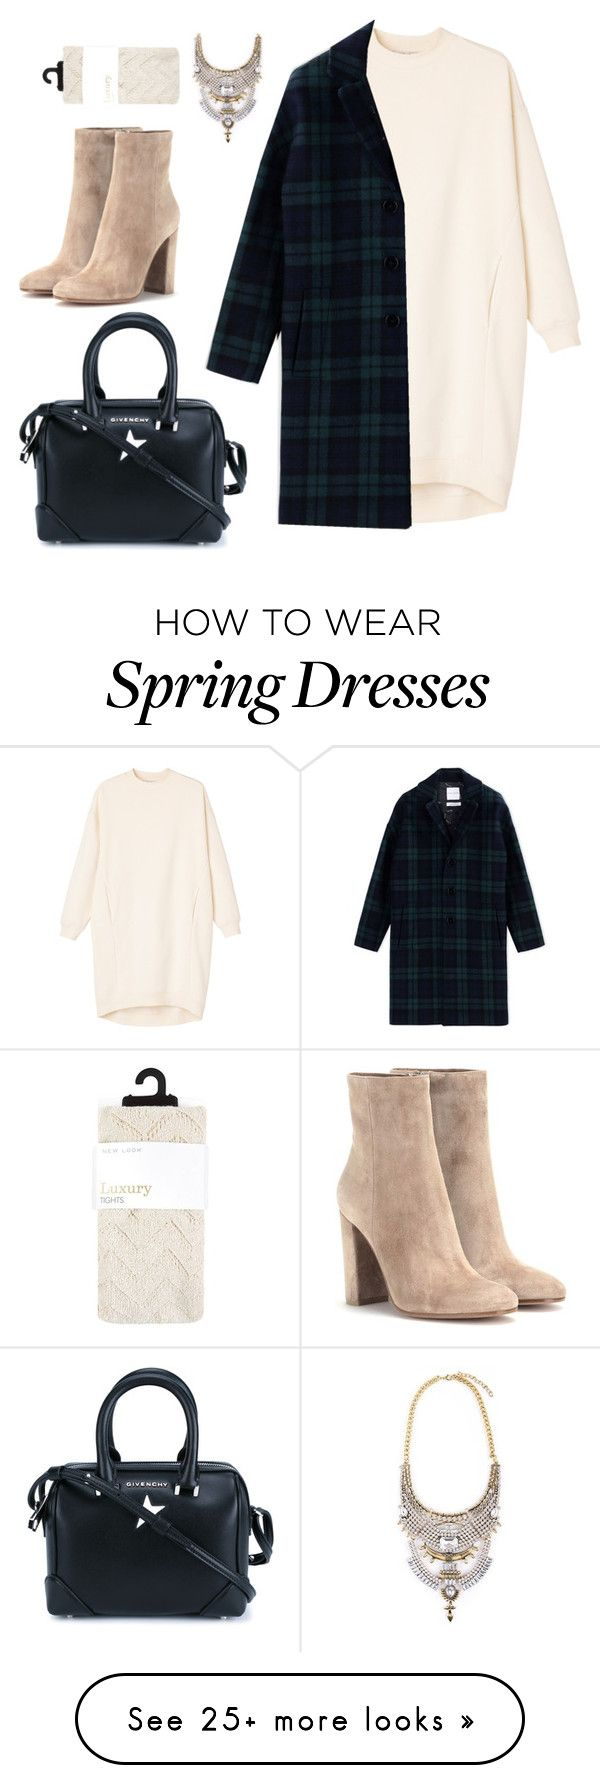 """Spring"" by babko-kate on Polyvore featuring Givenchy, Monki, Each X Other and Gianvito Rossi"